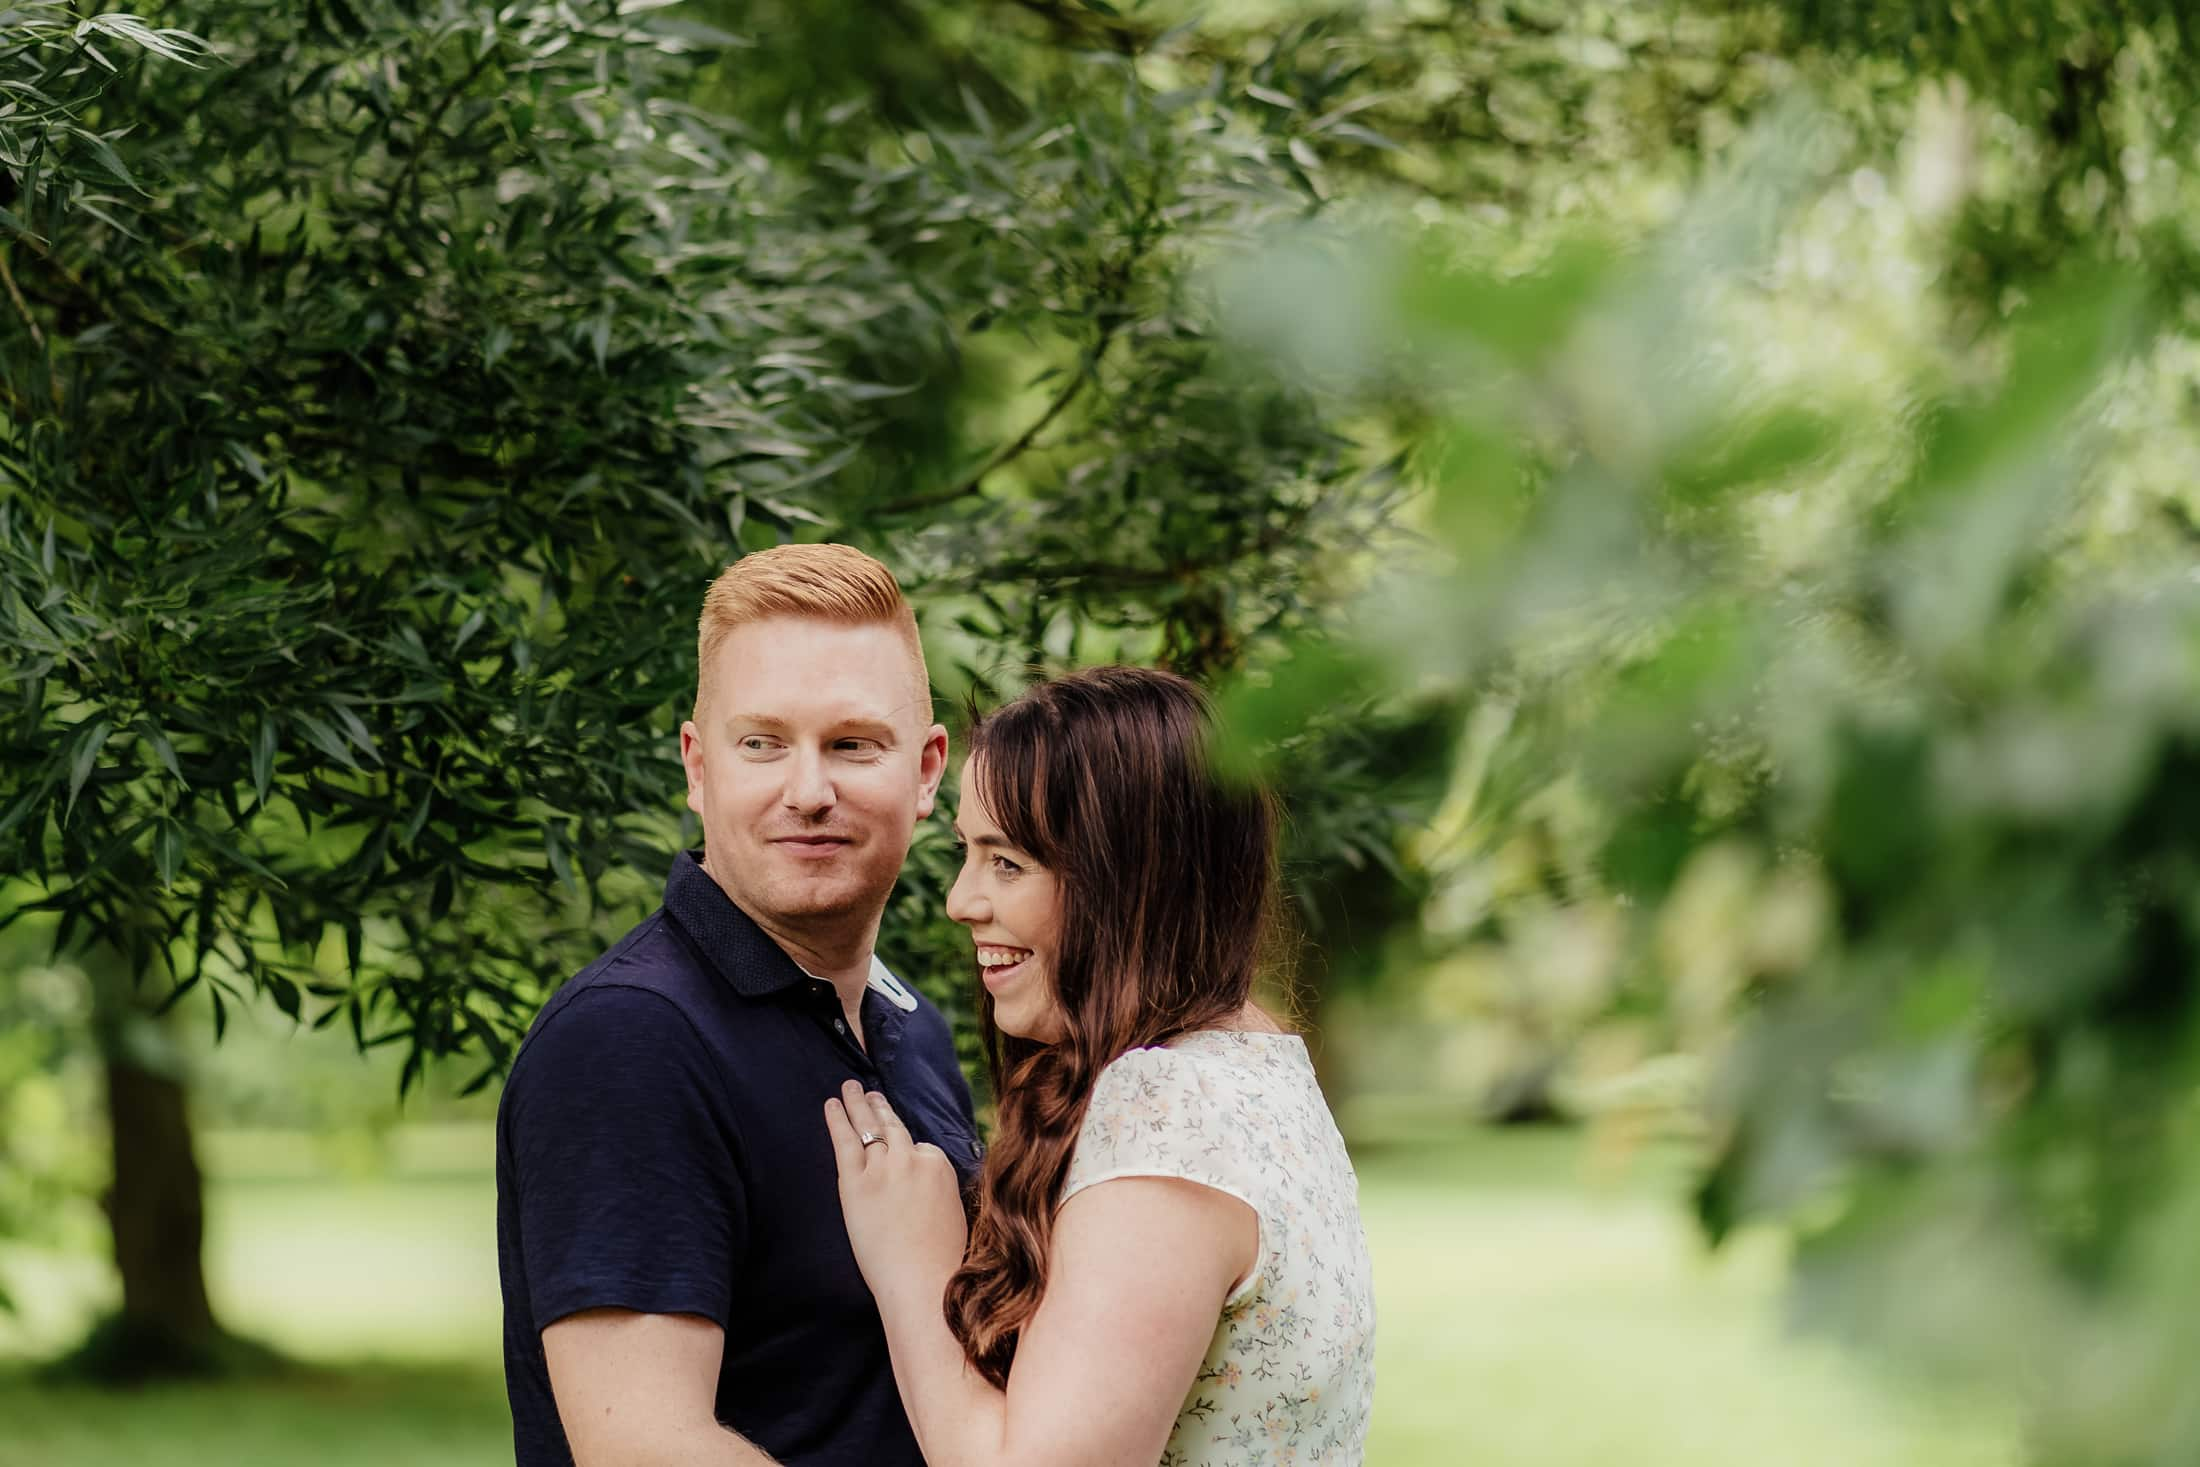 Maidstone Engagement photography session with Carlie & Ben